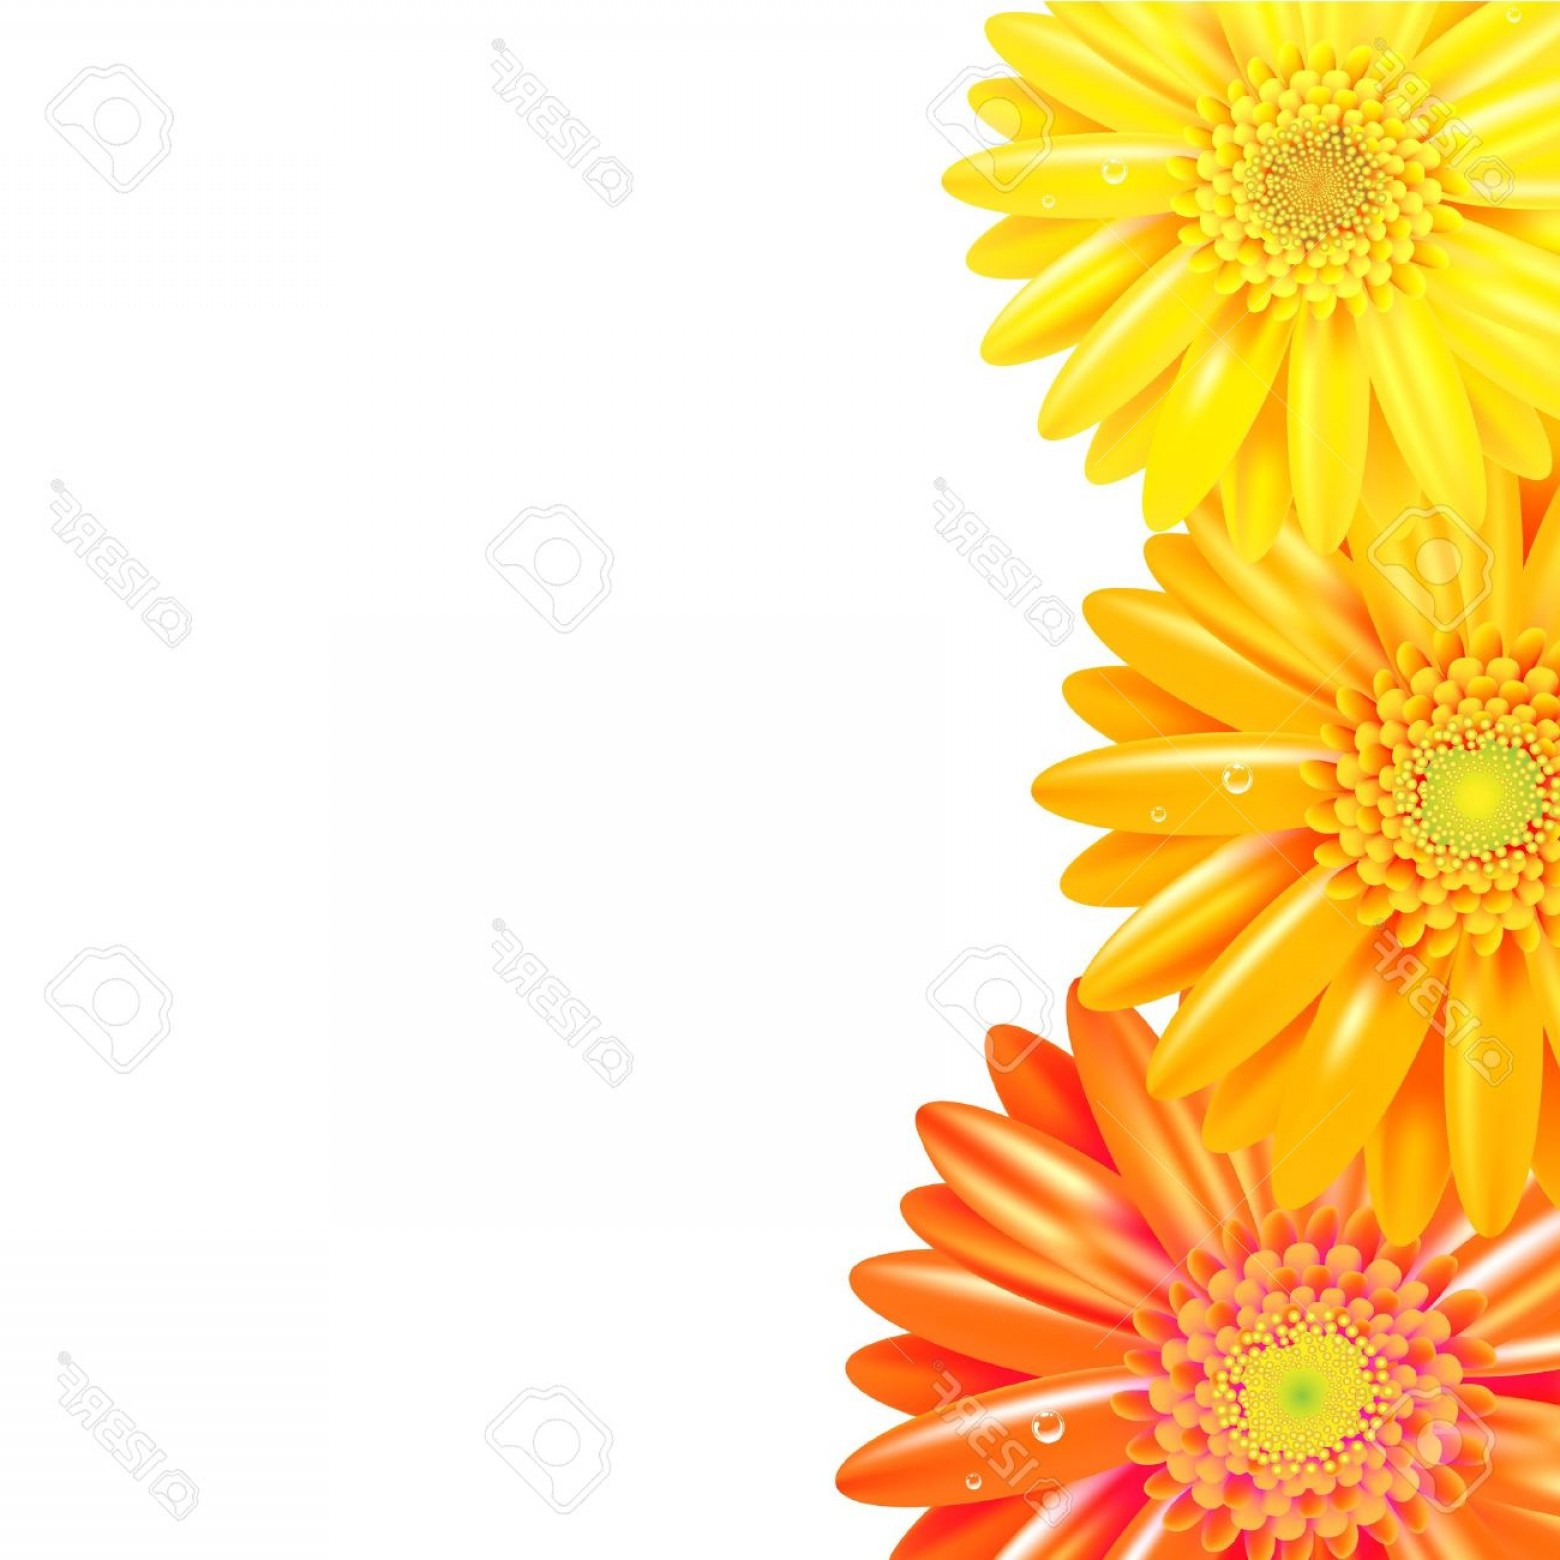 Orange Gerber Daisy Vector: Glamorous Photoyellow And Orange Gerbers Border Isolated On White Background Vector Illustration